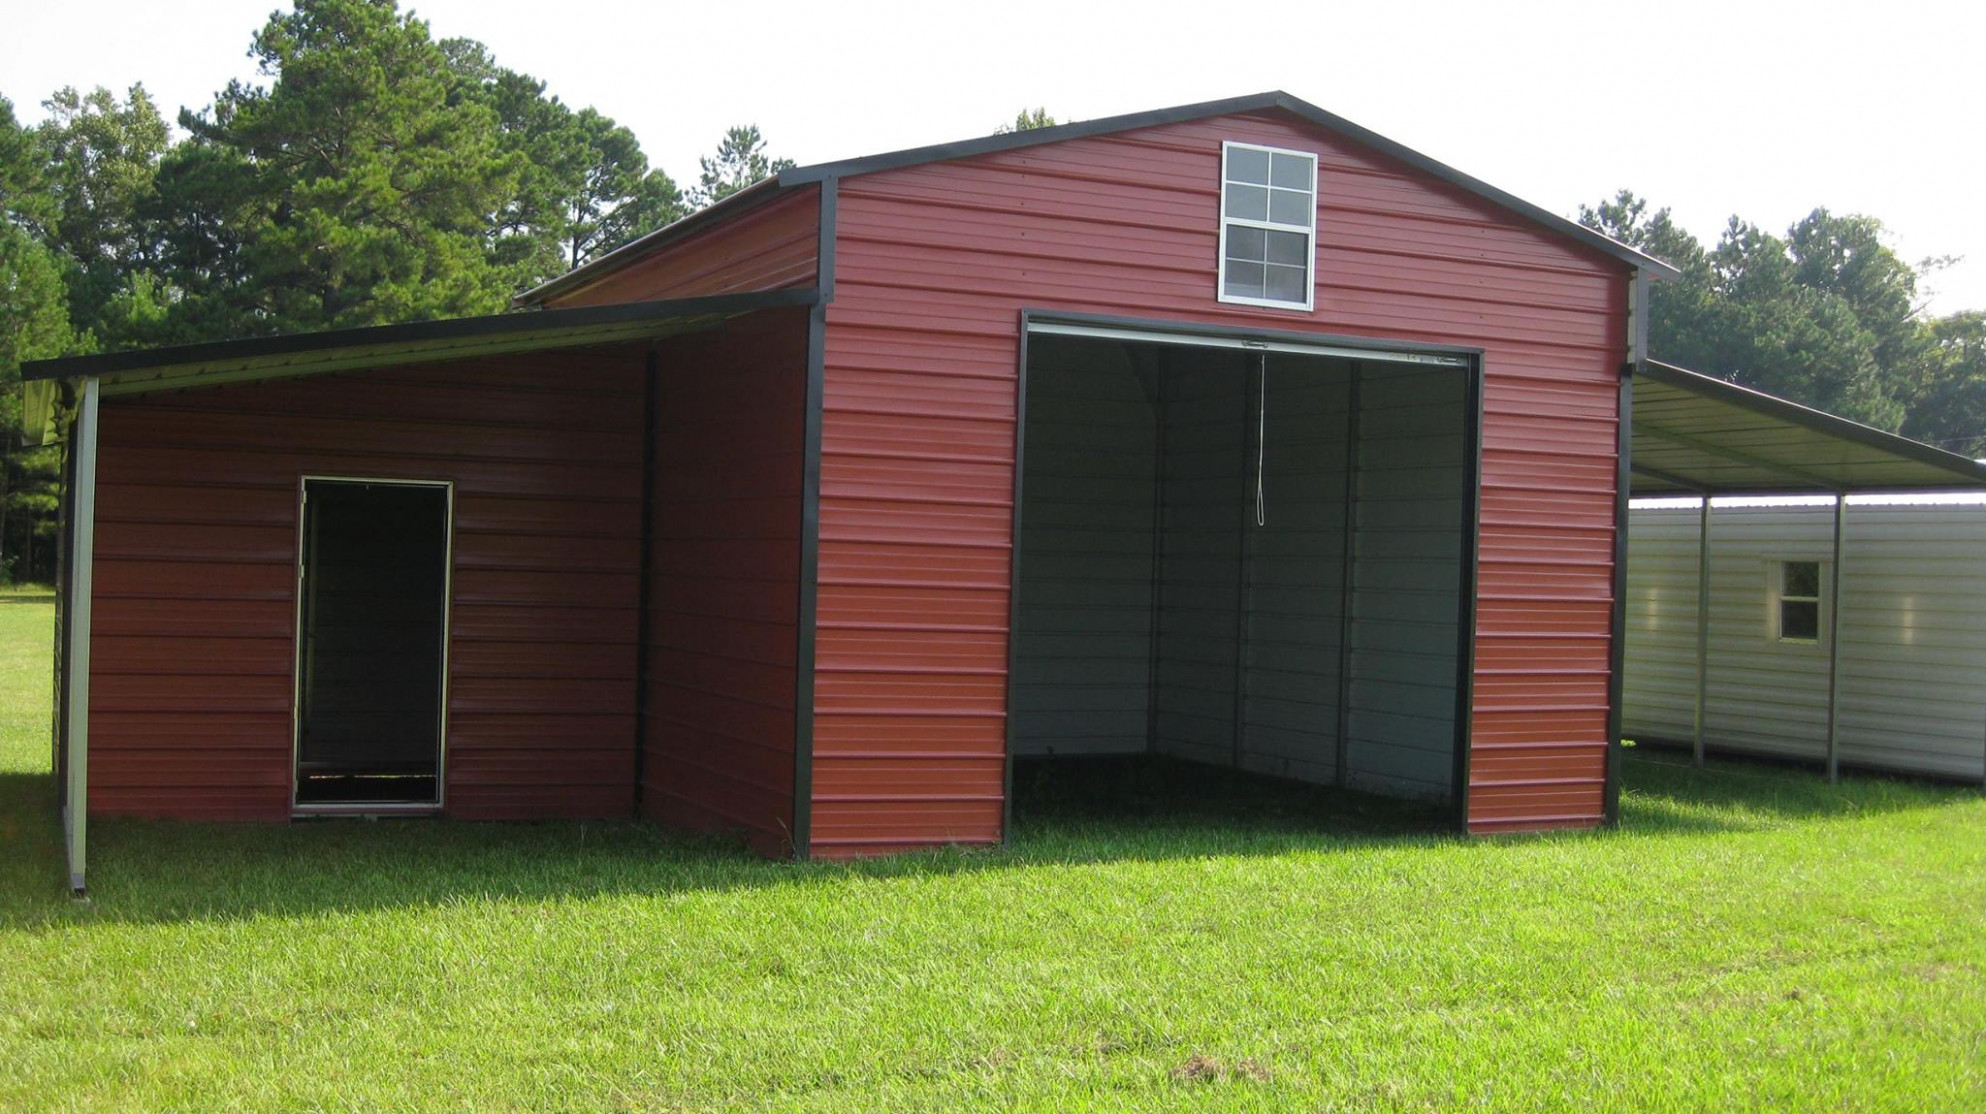 Carports & Garages For Sale Garage Carport Buildings